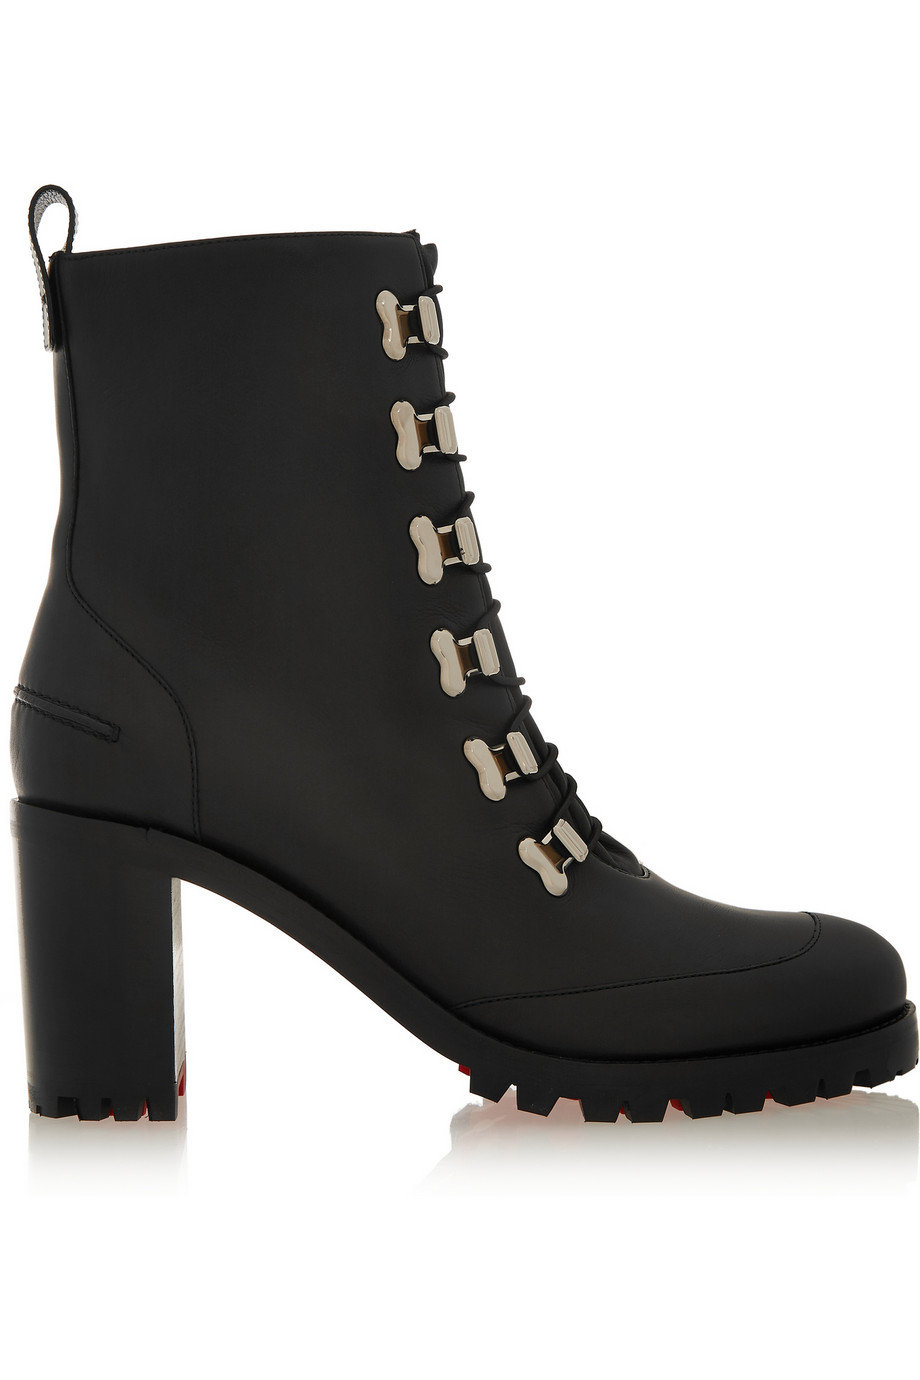 Christian Louboutin Country Crochet boots